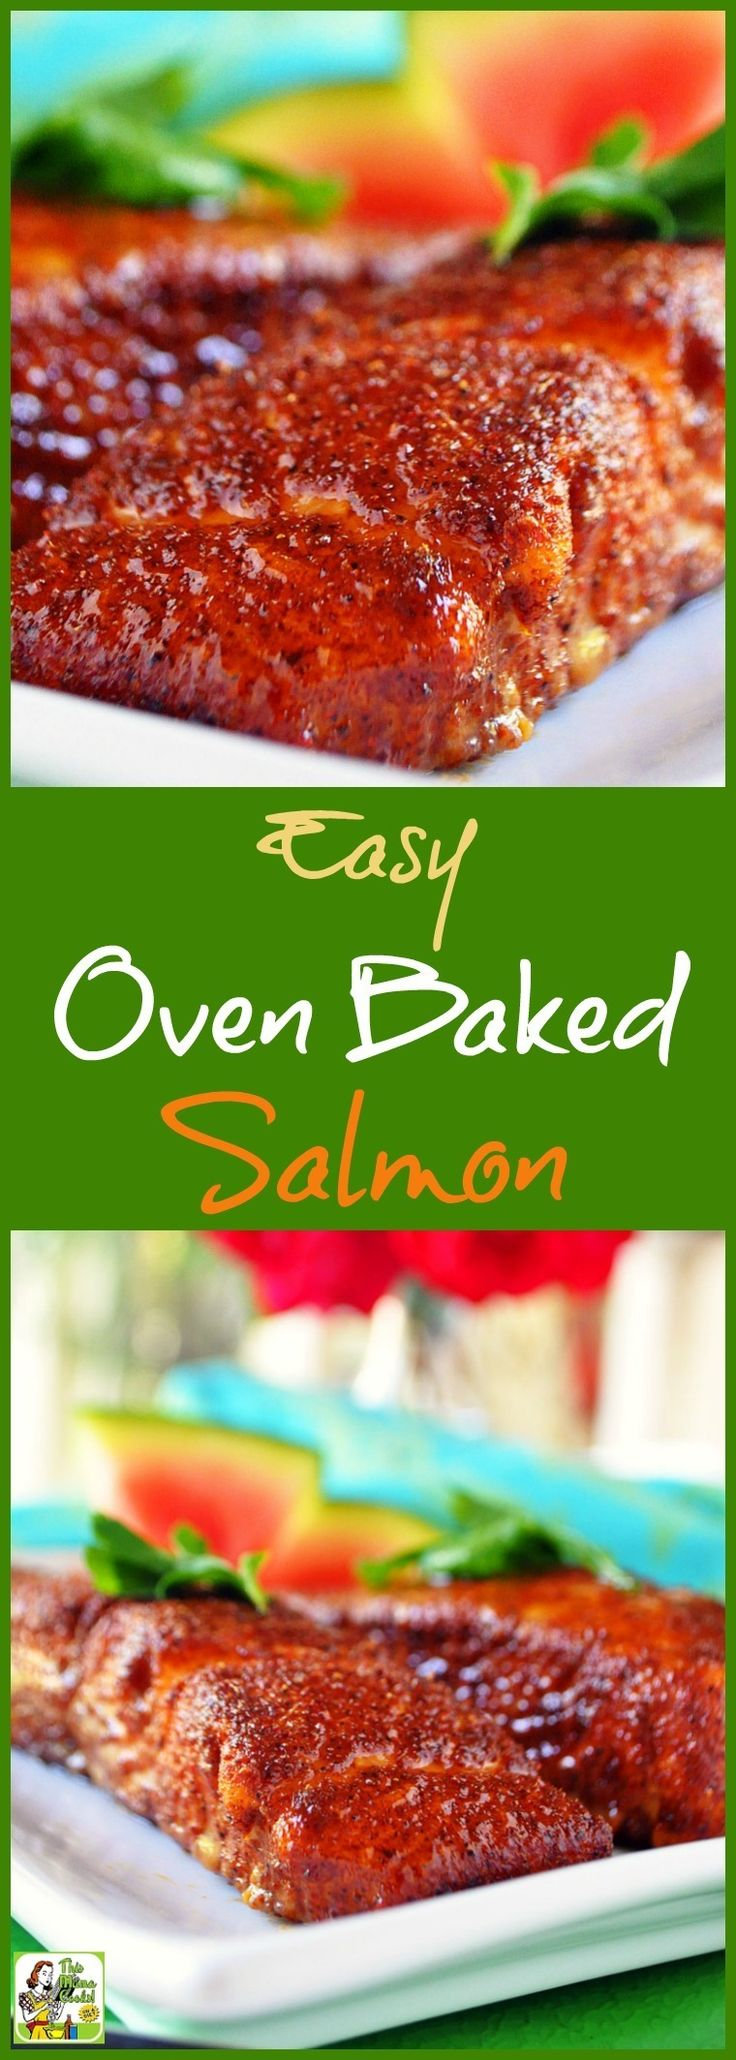 265 best images about misc on pinterest ovens cajun for How to bake swai fish in foil